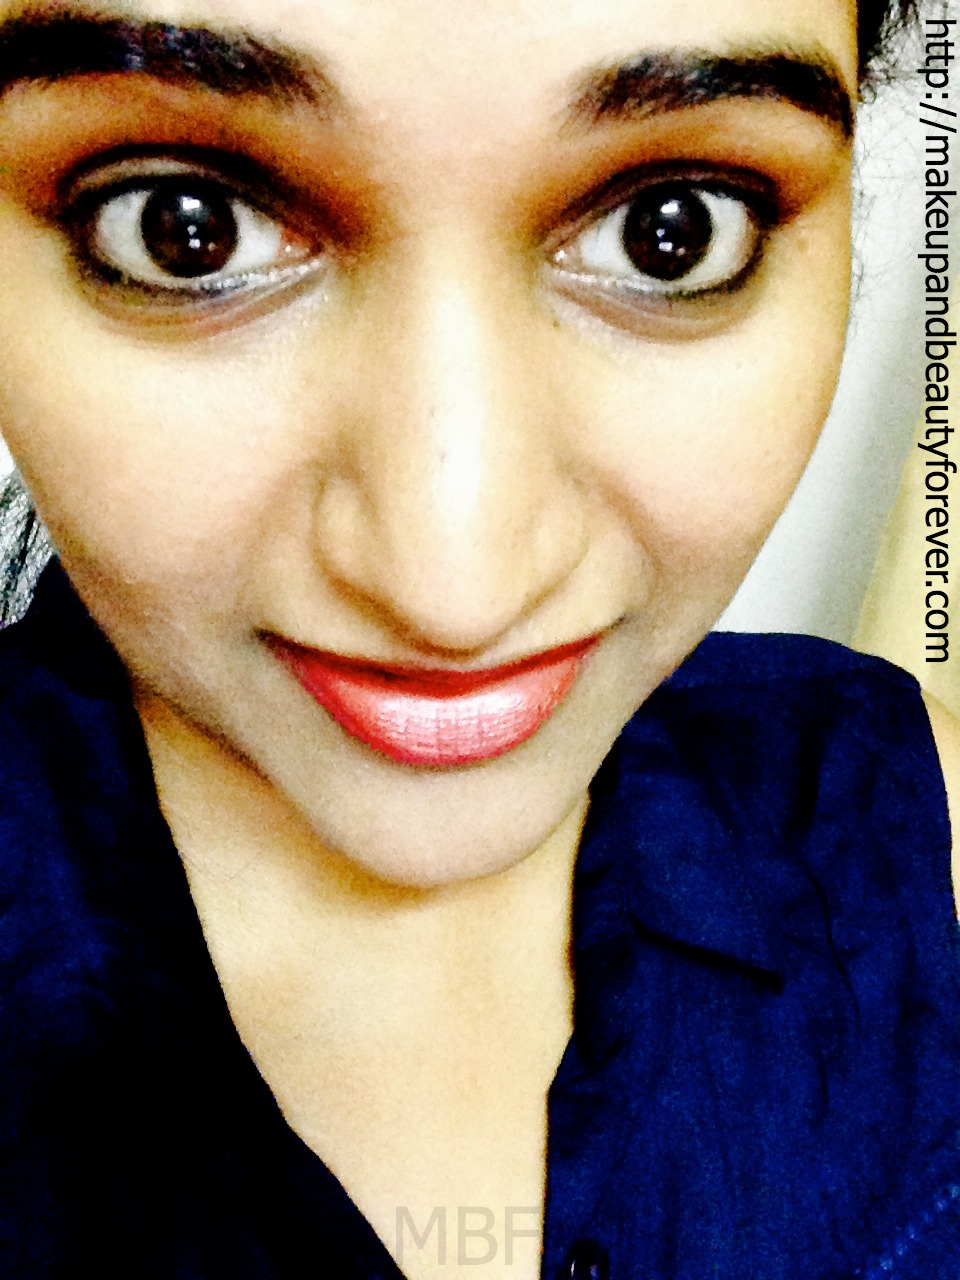 Faces Canada Go Chic Lipstick Claret Cup 416 Review and FOTDs